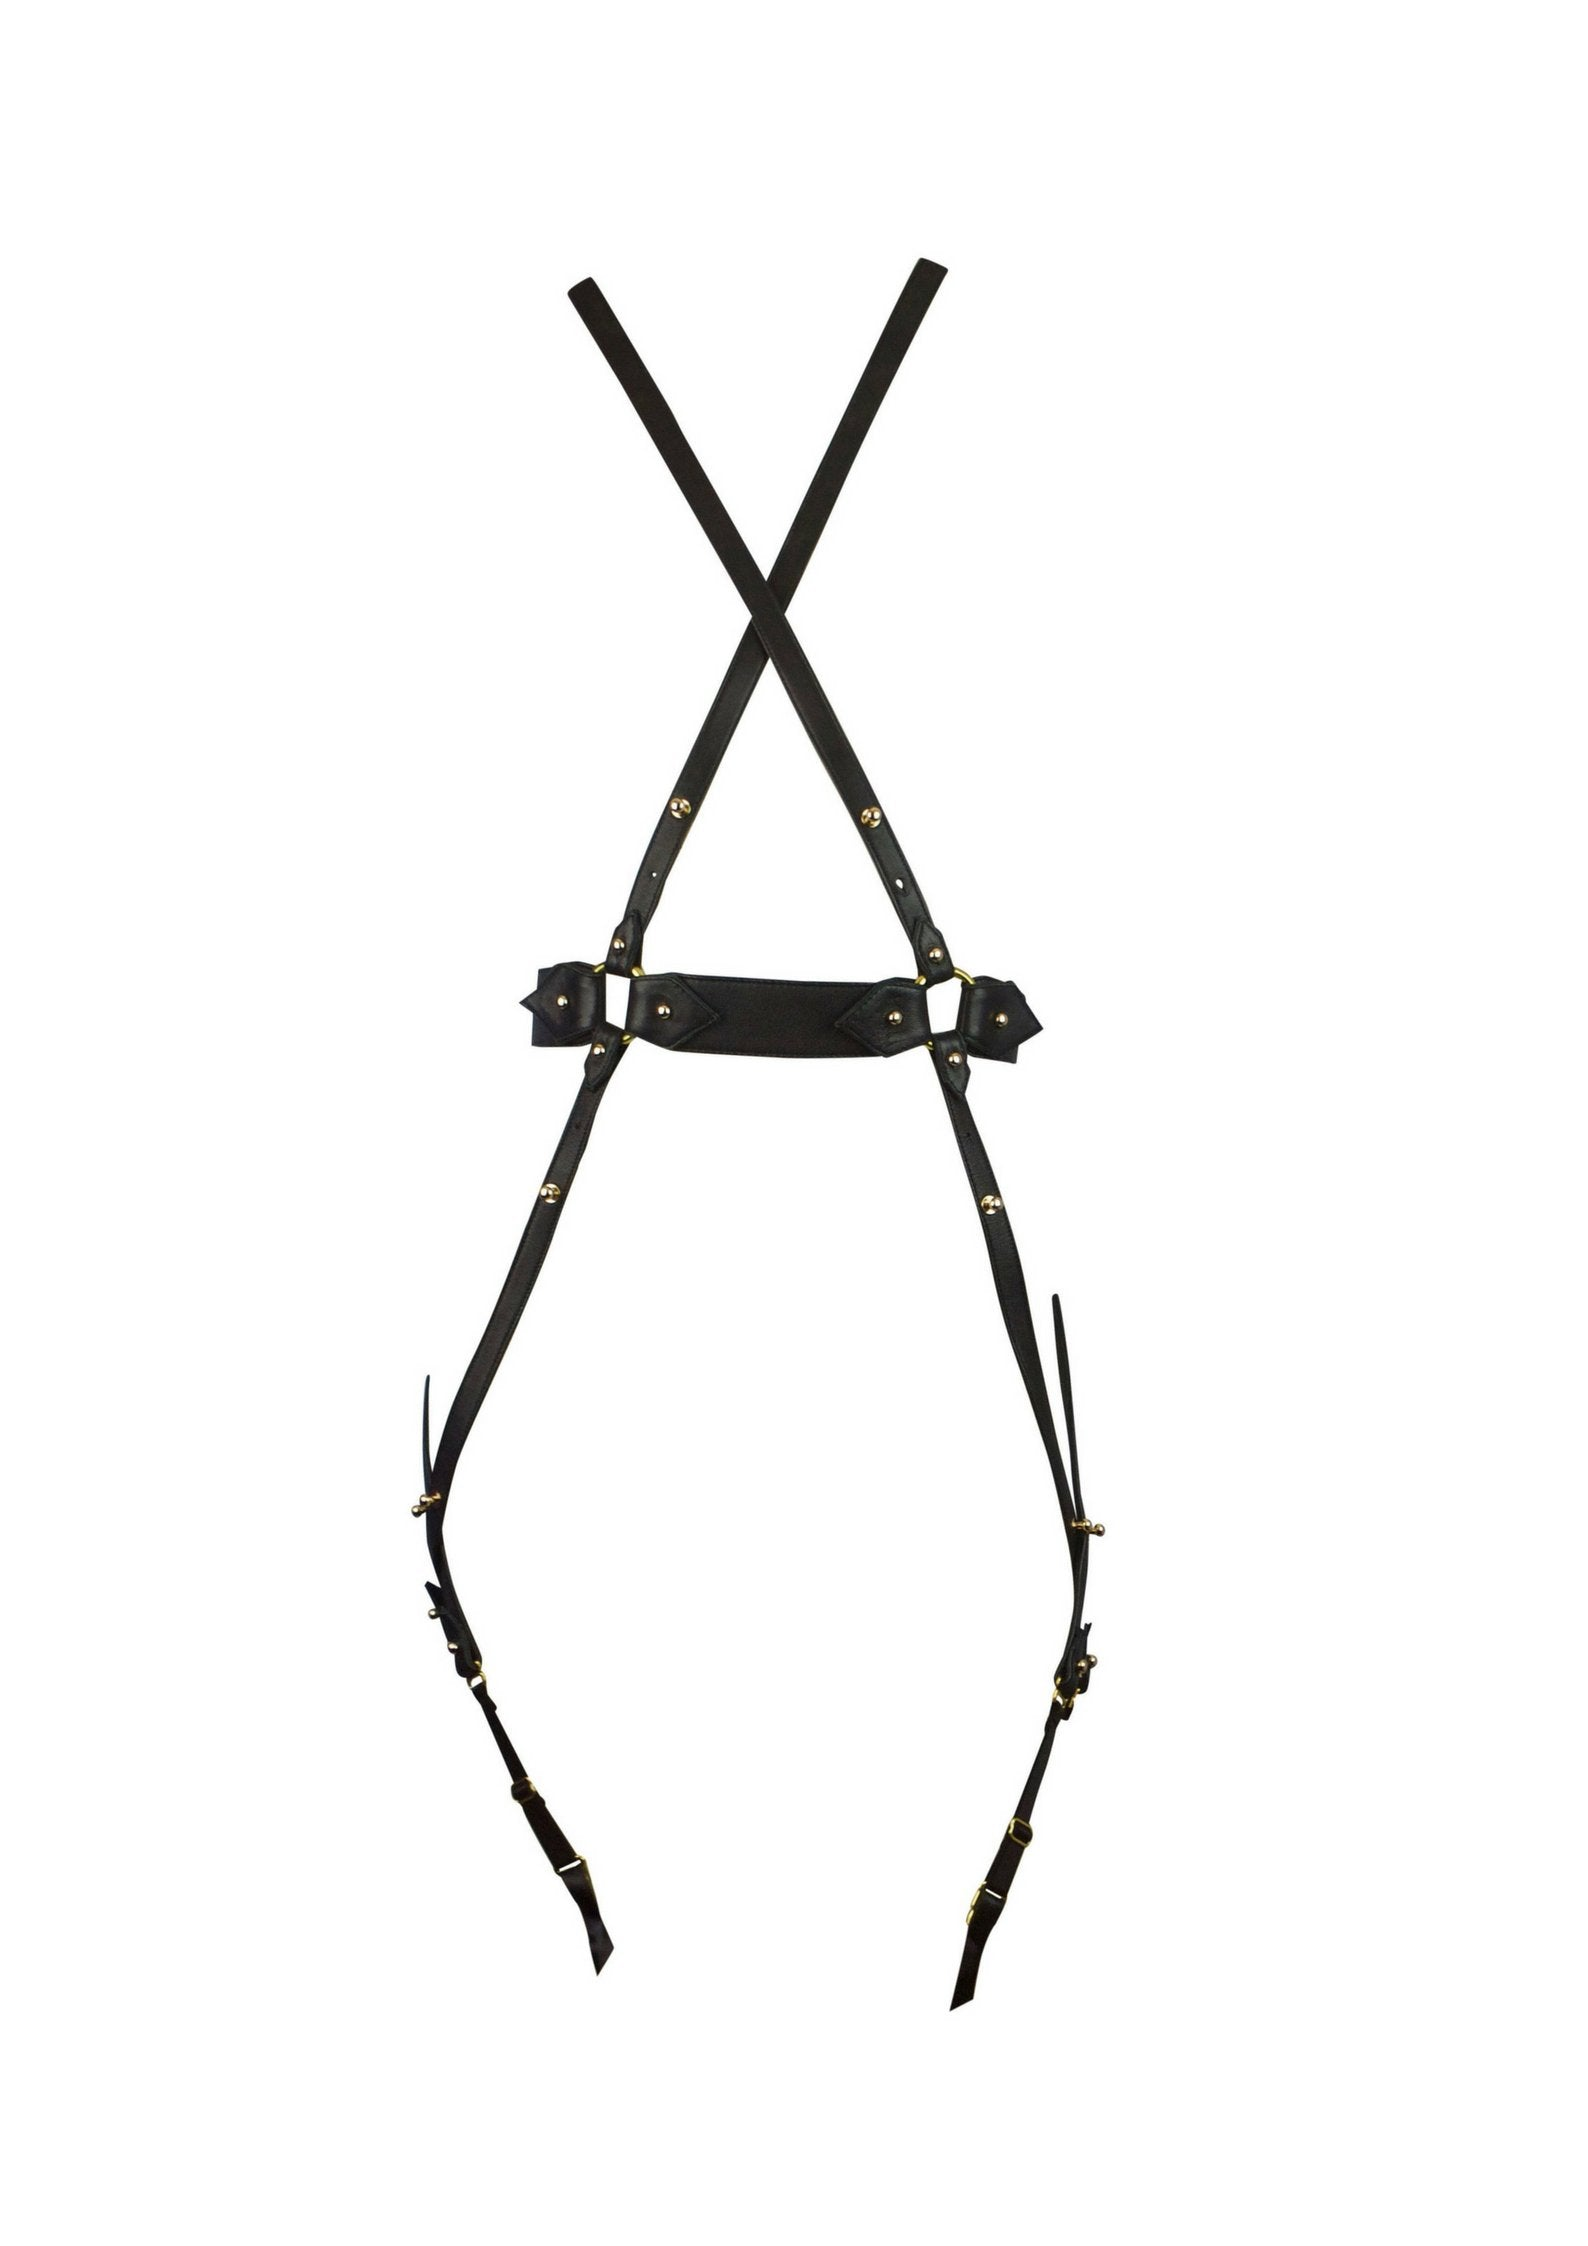 Lola 'n' Leather harness - Available to pre-order now